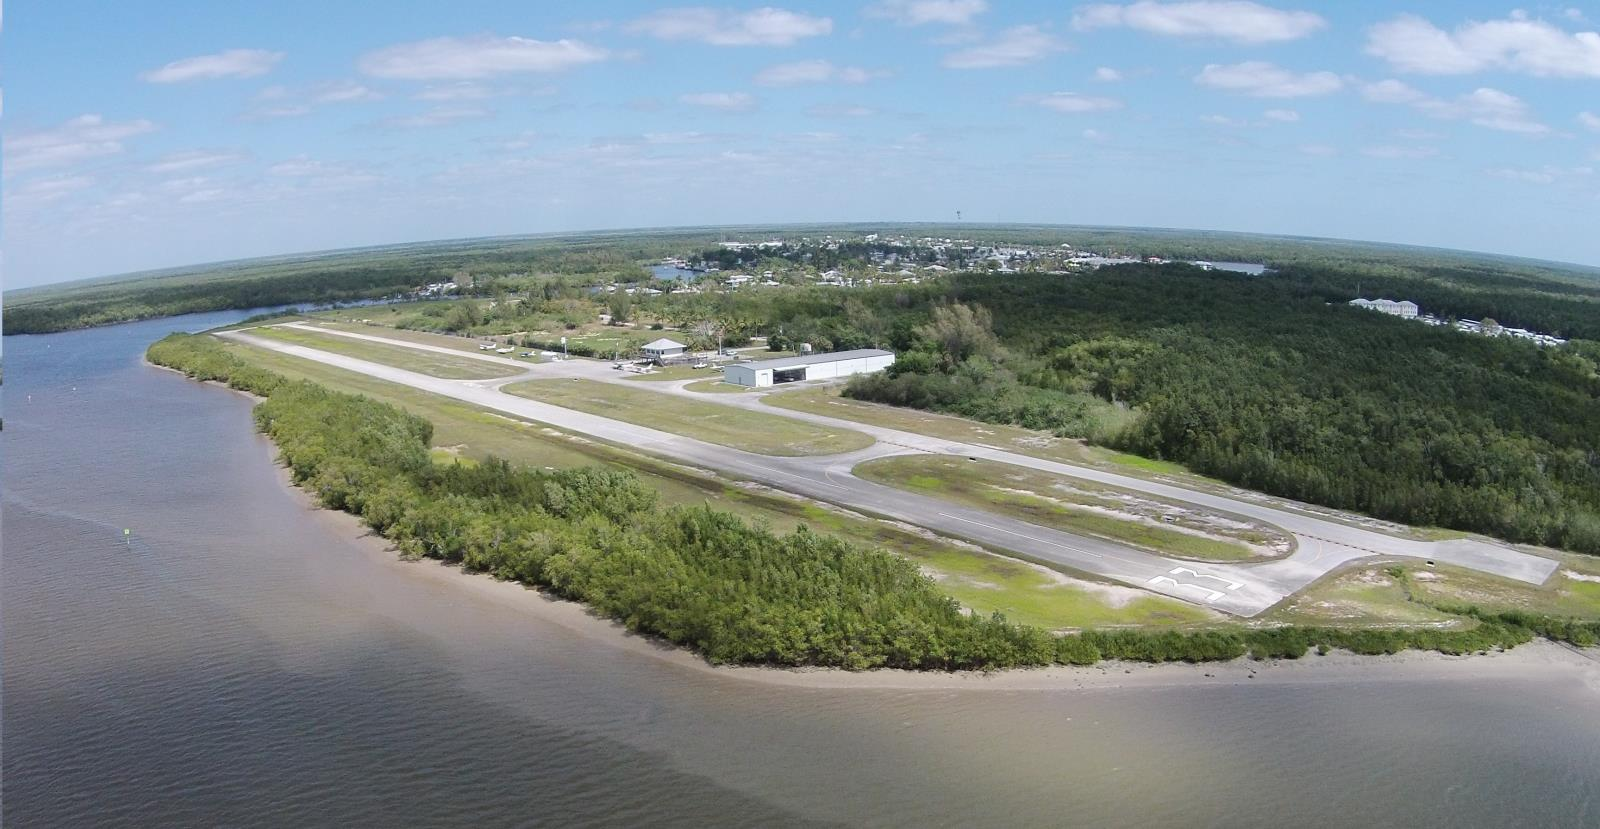 aerial view of everglades airport runways